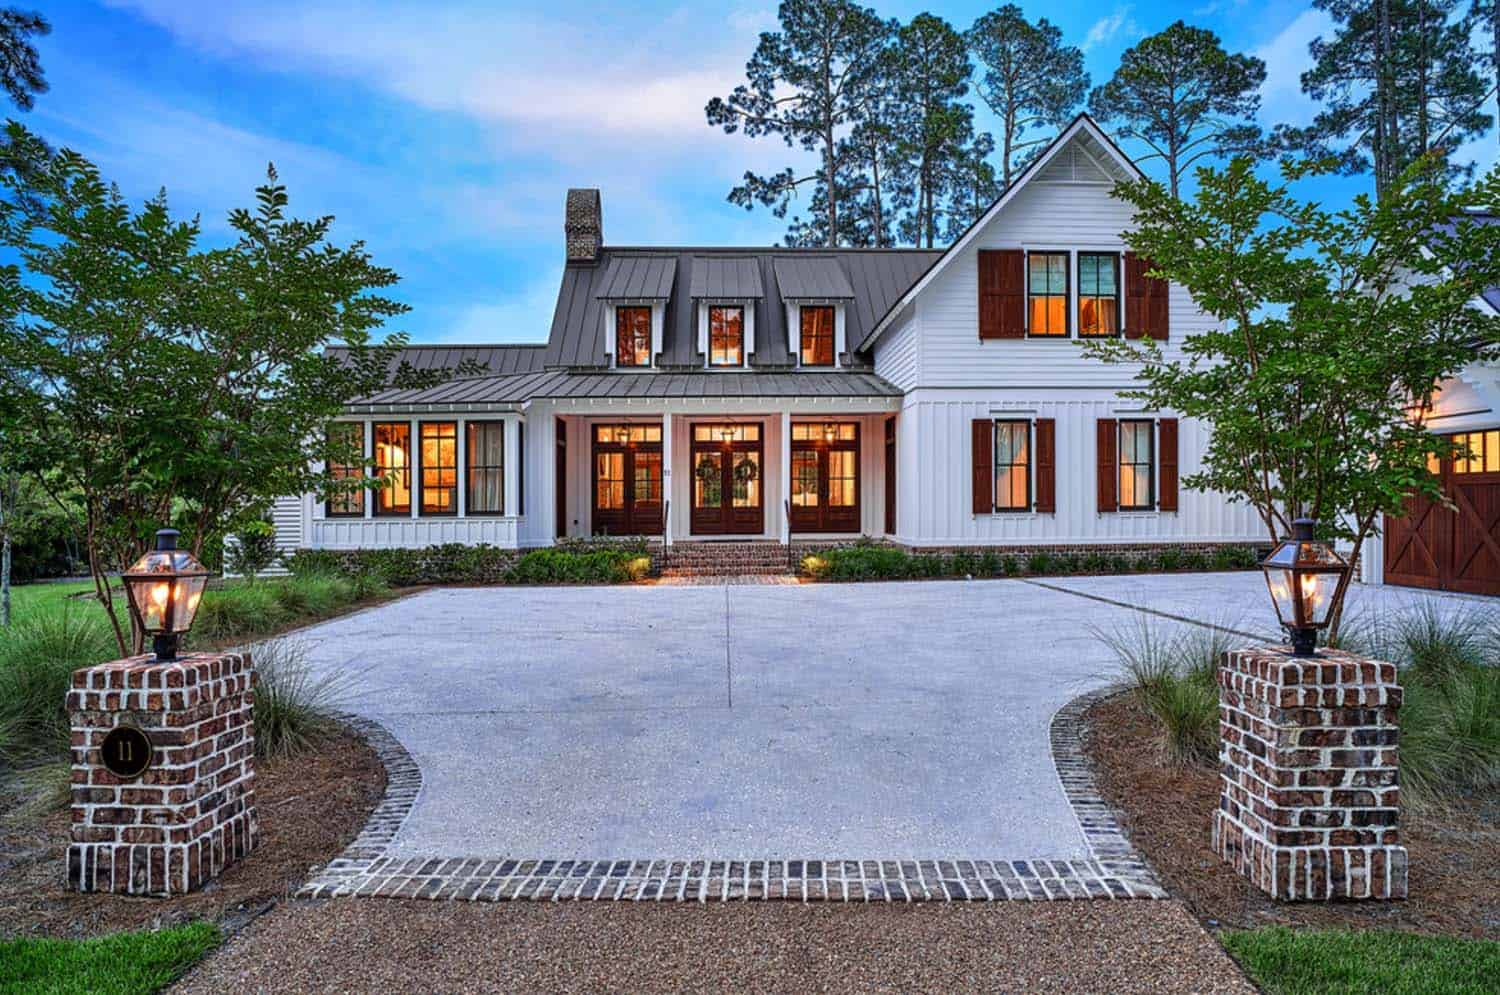 Exquisite south carolina farmhouse evoking a low country style for Home style